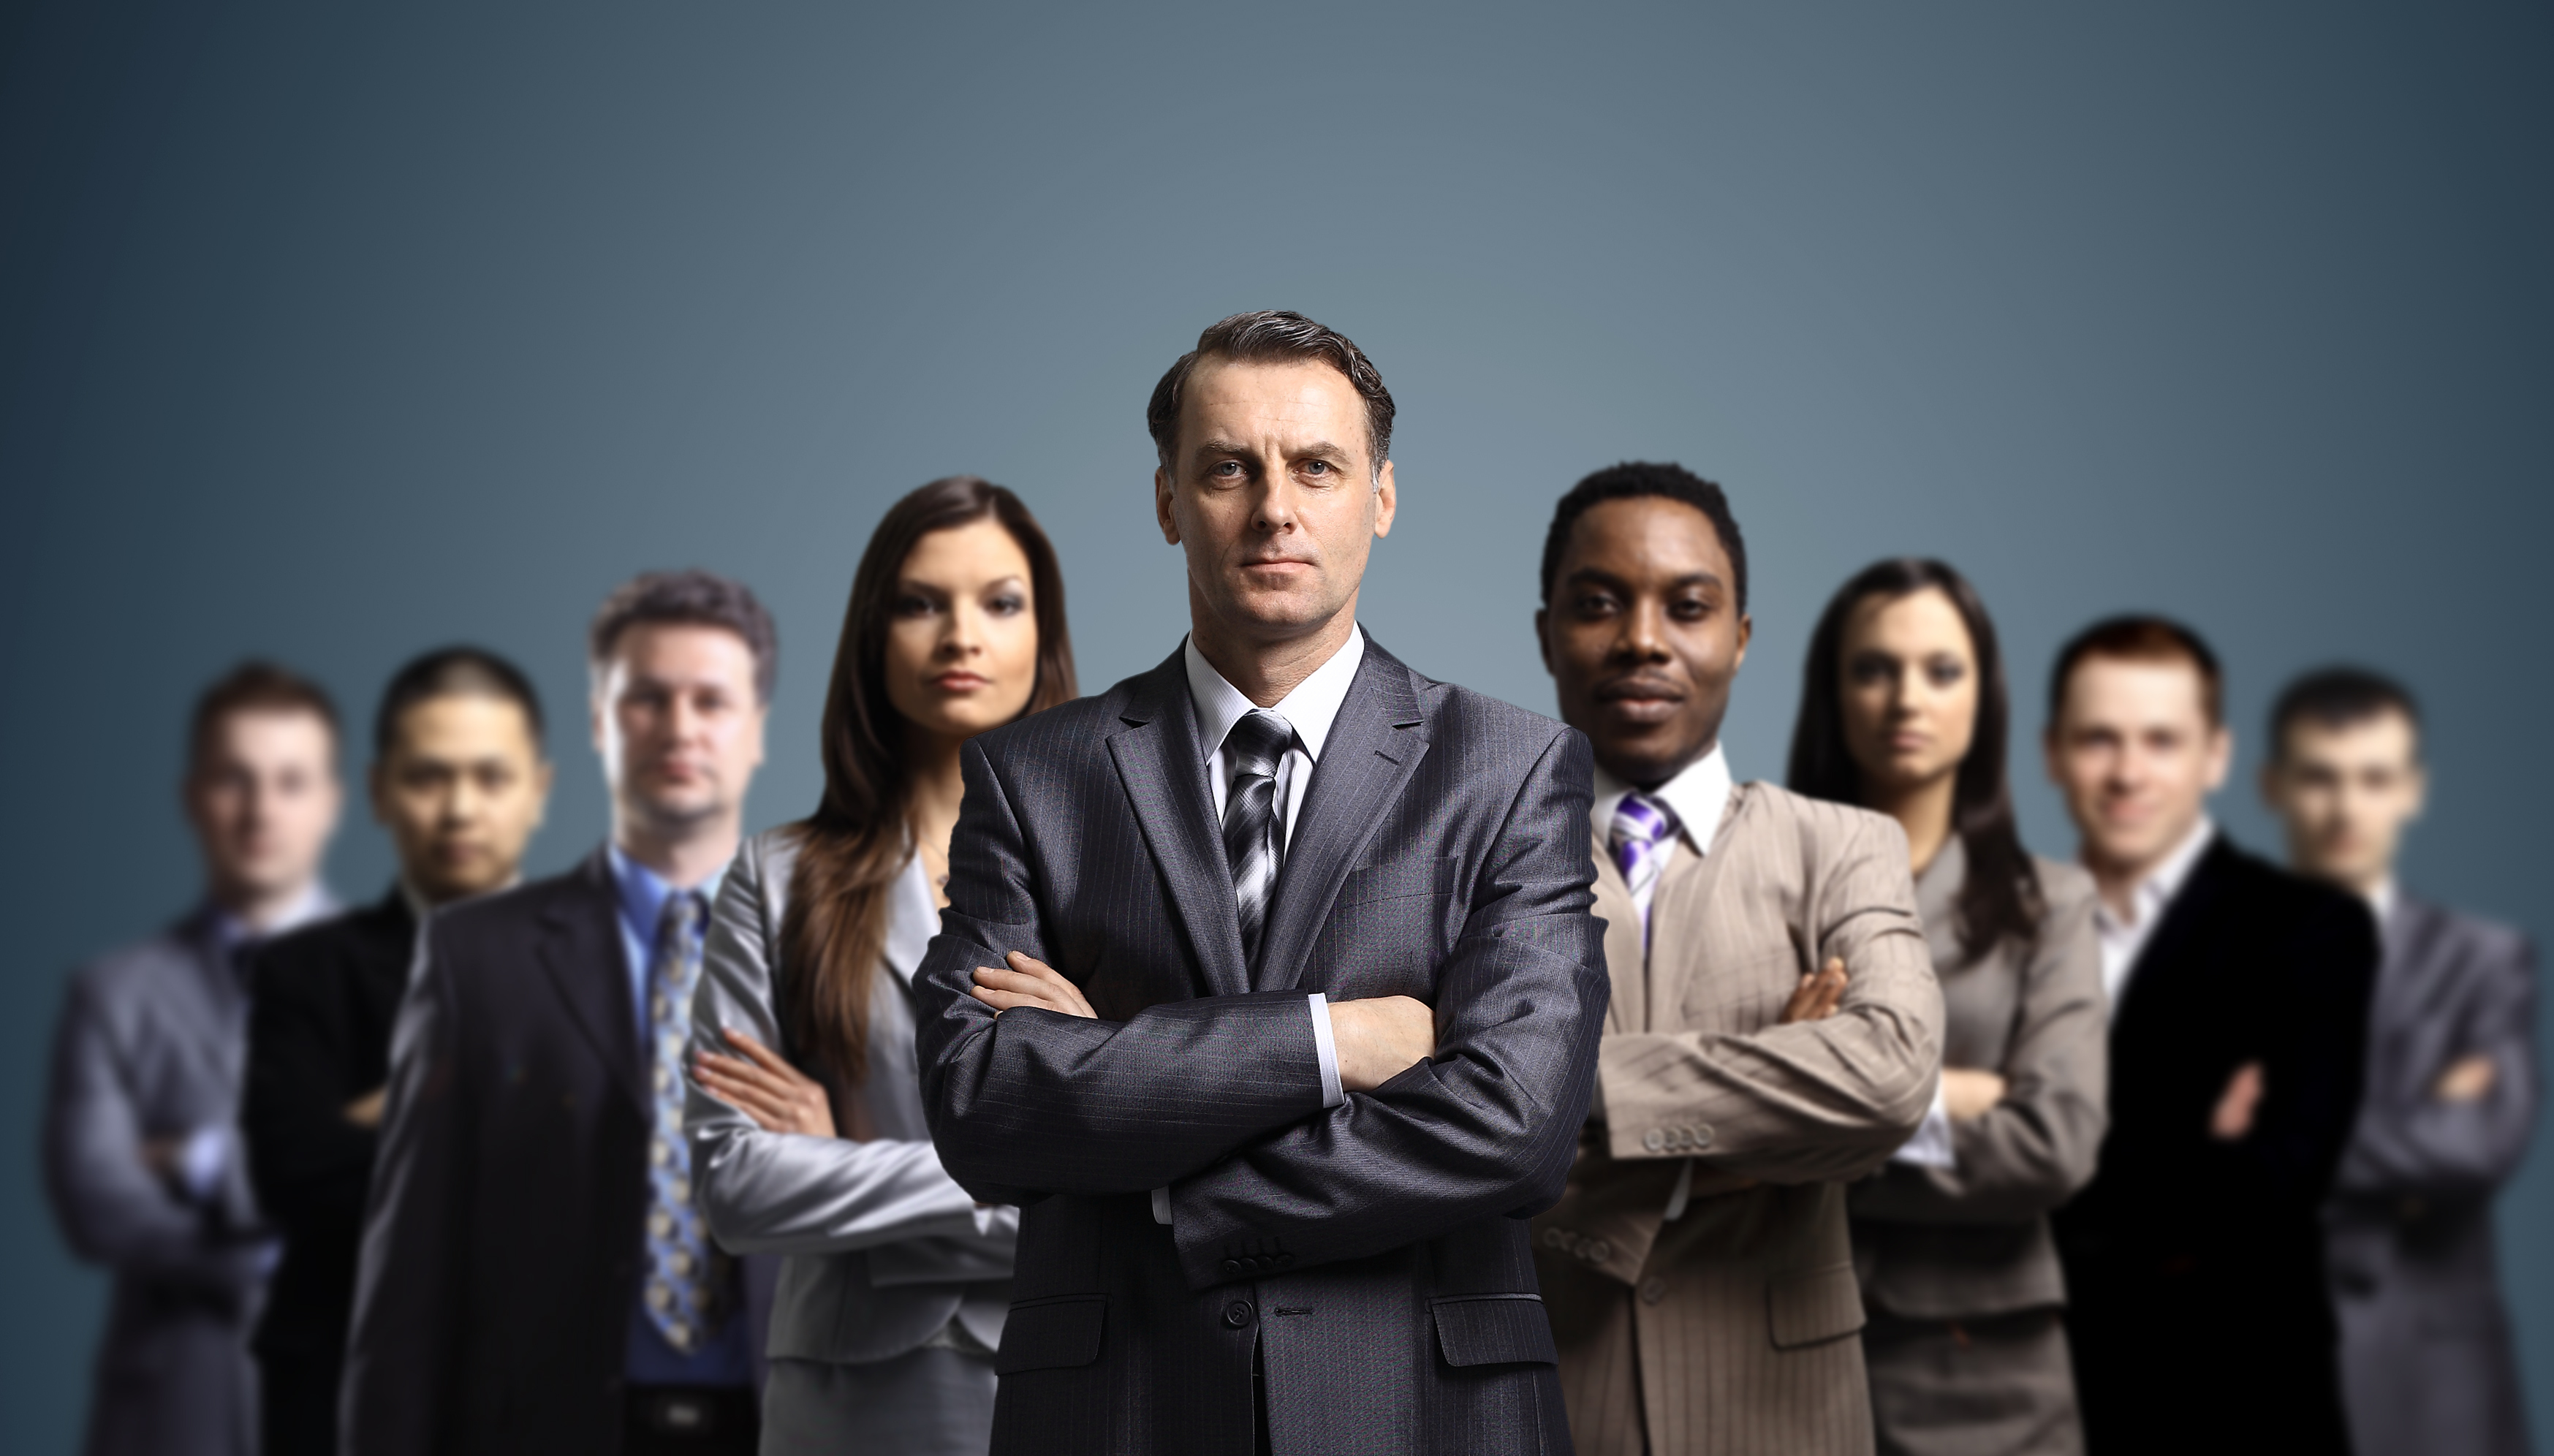 executive leadership in relation to company success Today's business professionals know that in order to achieve success, they must commit to lifelong learning and skill building enrolling in online business courses is one route to improving your leadership skill set, and earning valuable leadership certification.